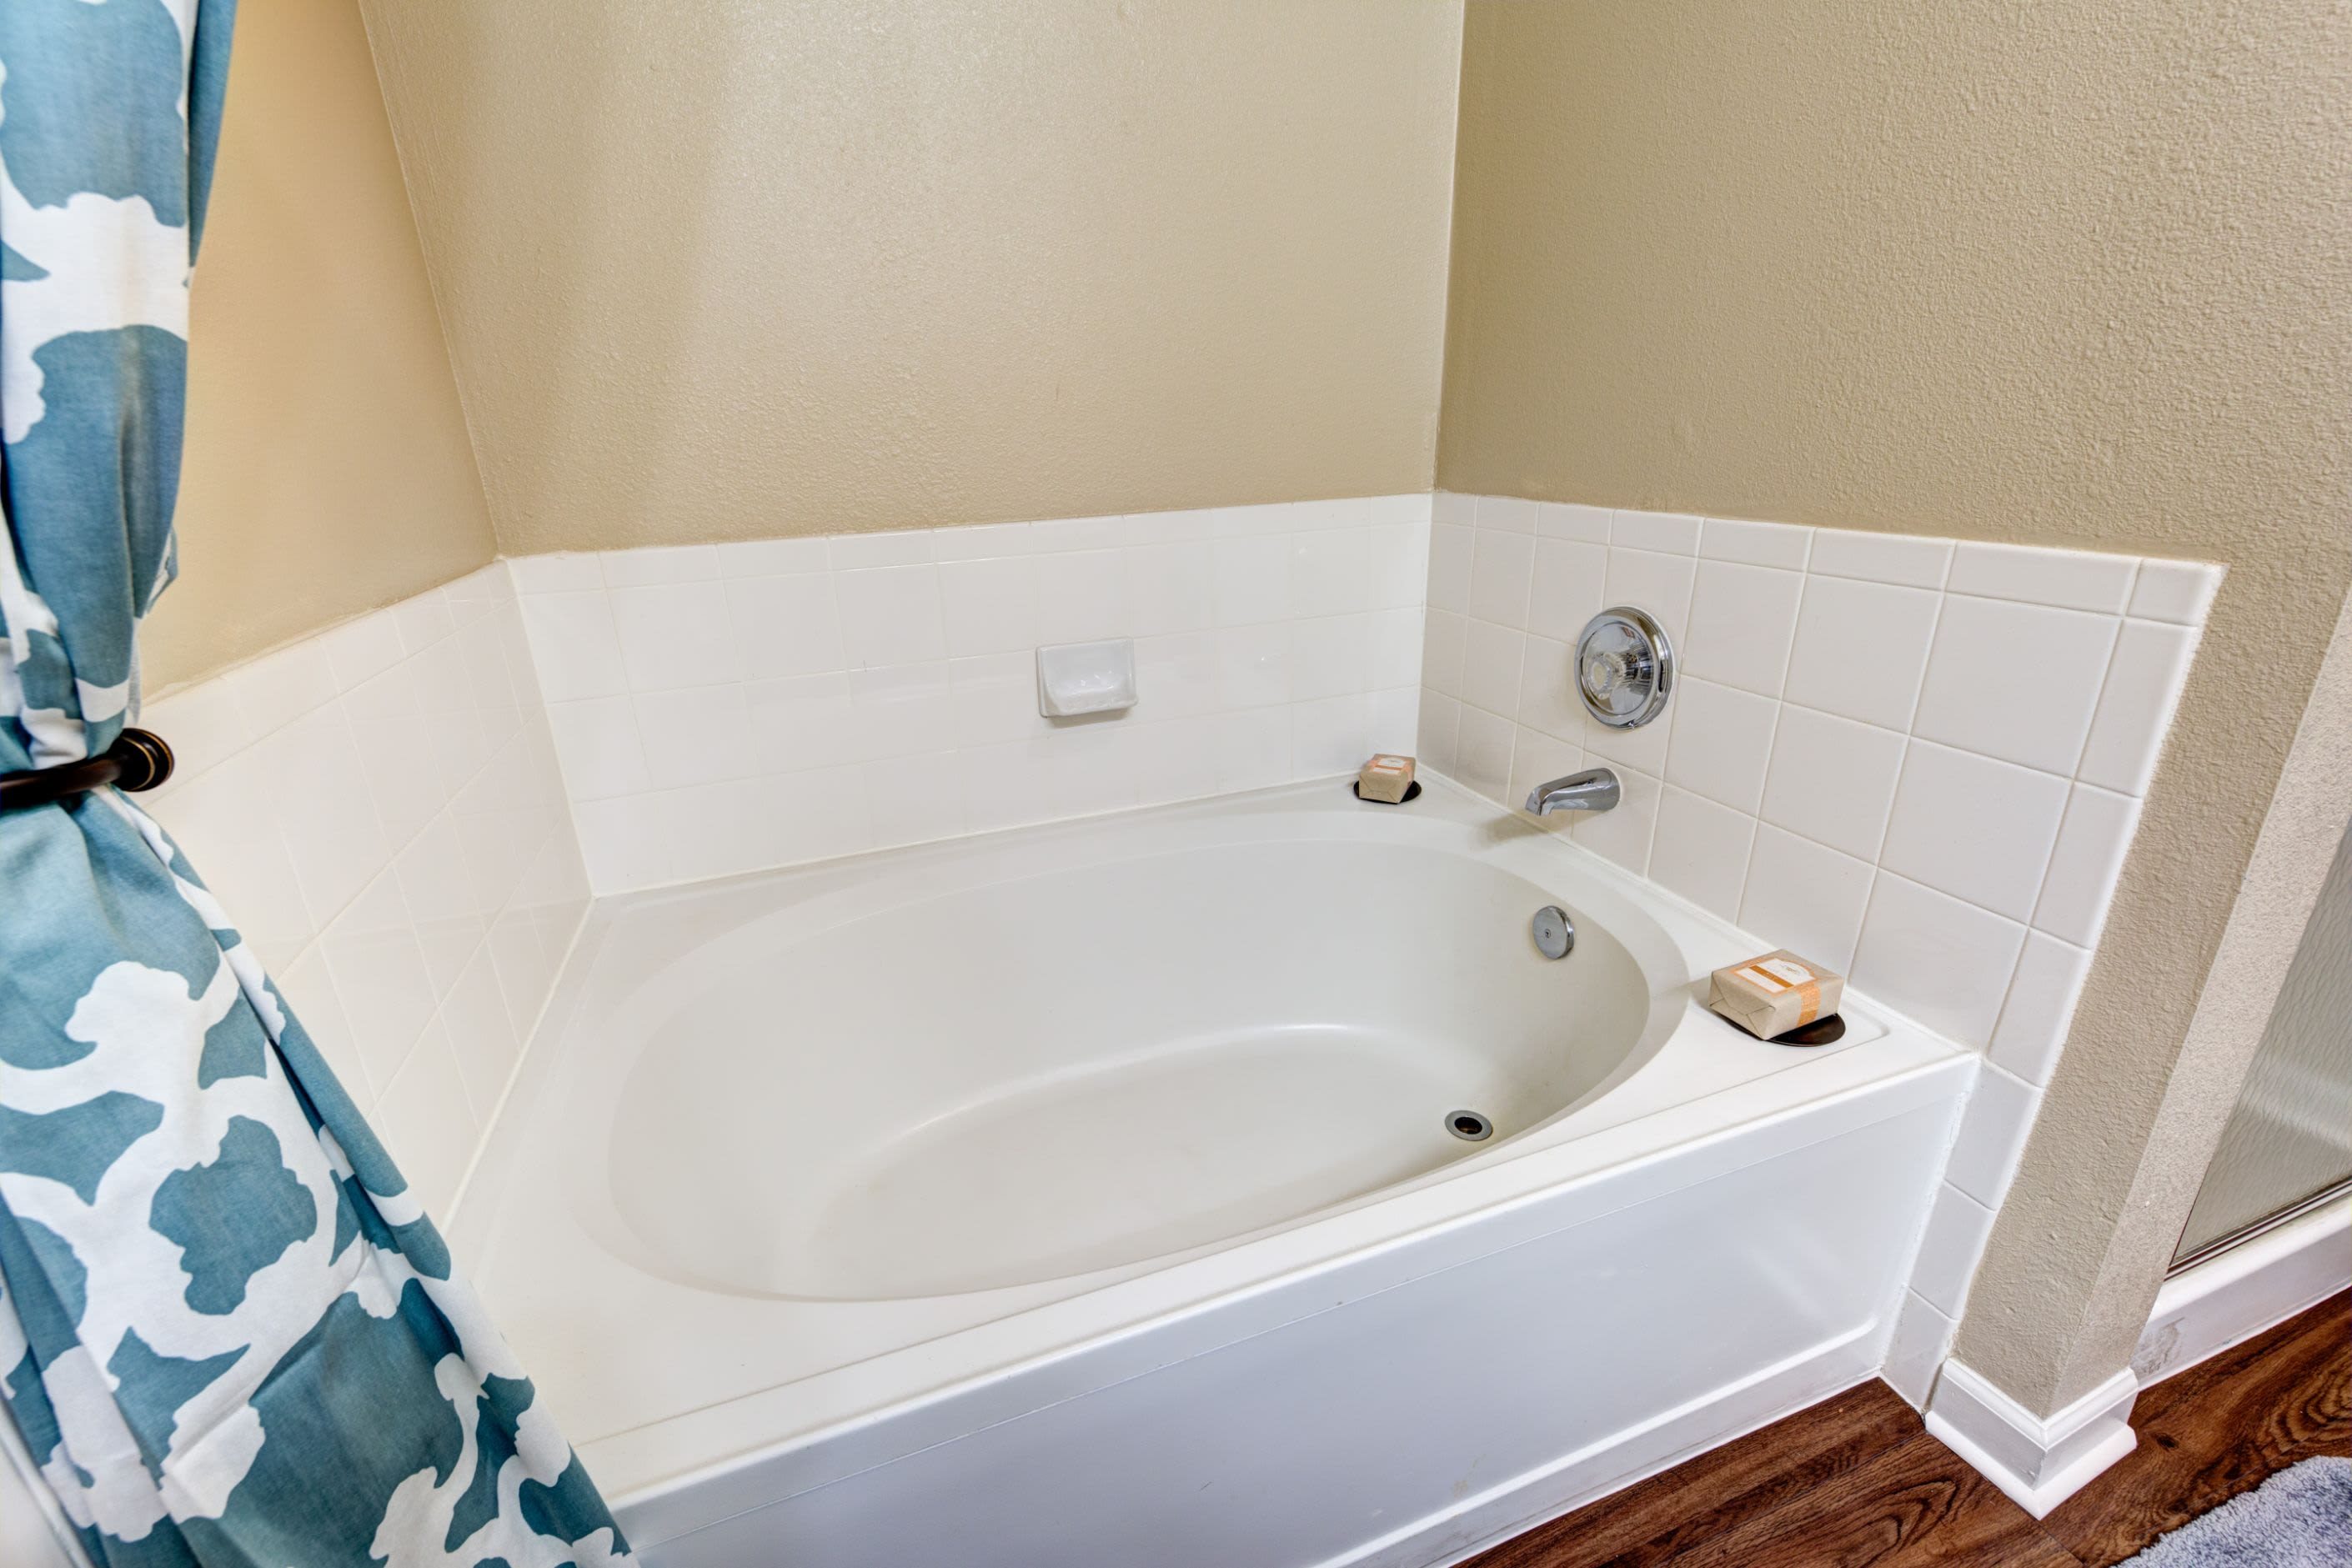 Bathtub at Marquis at Town Centre in Broomfield, Colorado